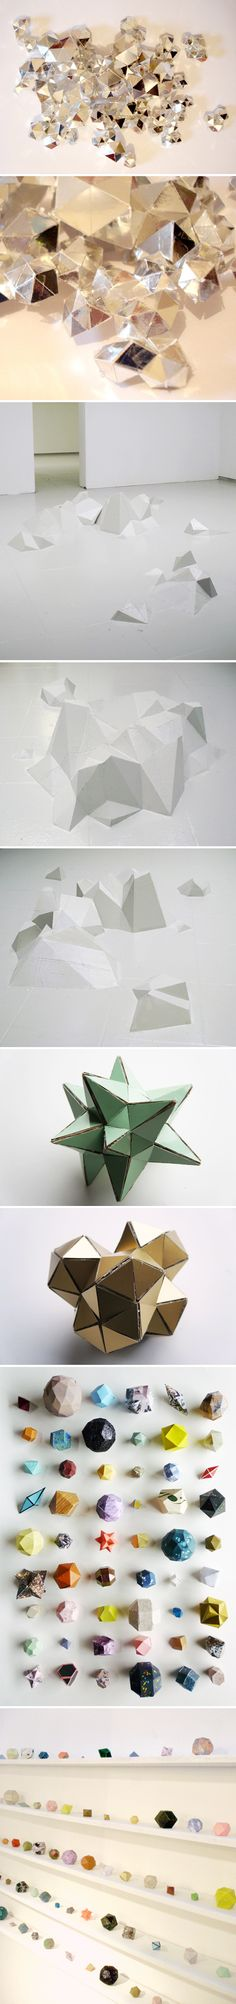 Origami to the max Origami, Sculpture Art, Sculptures, Instalation Art, Art And Architecture, Form, Art Inspo, Amazing Art, Crystals